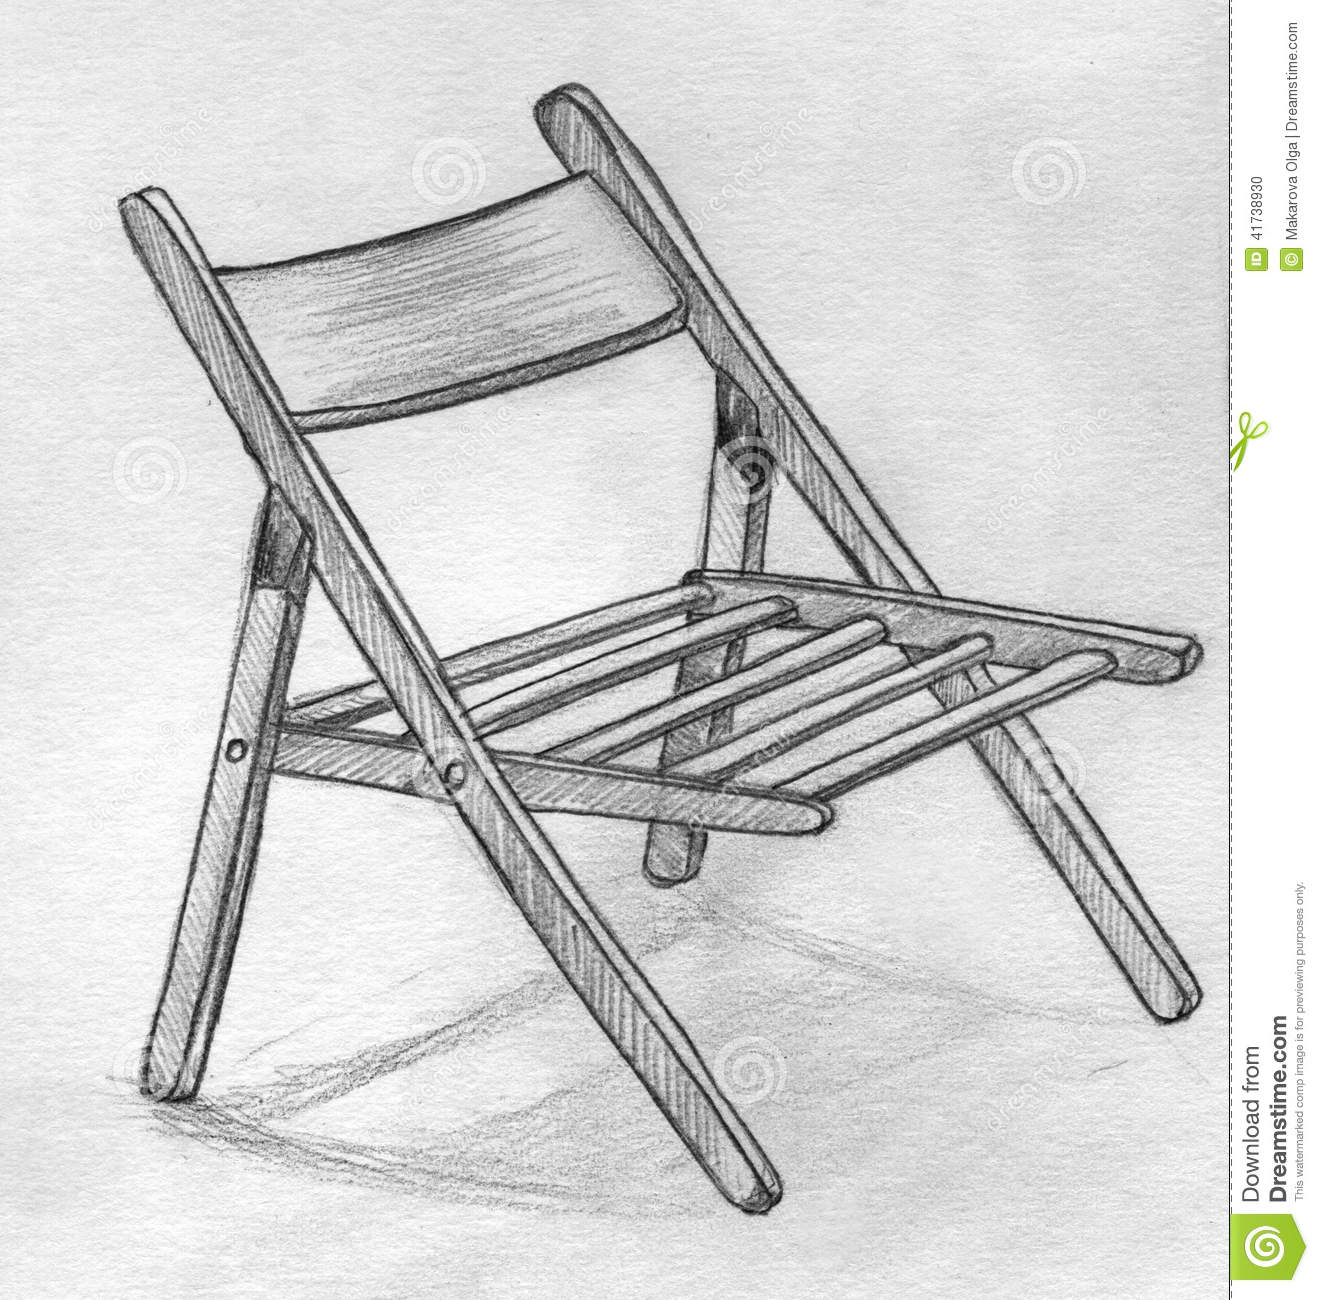 Hand Drawn Pencil Sketch Of A Folding Chair Stock